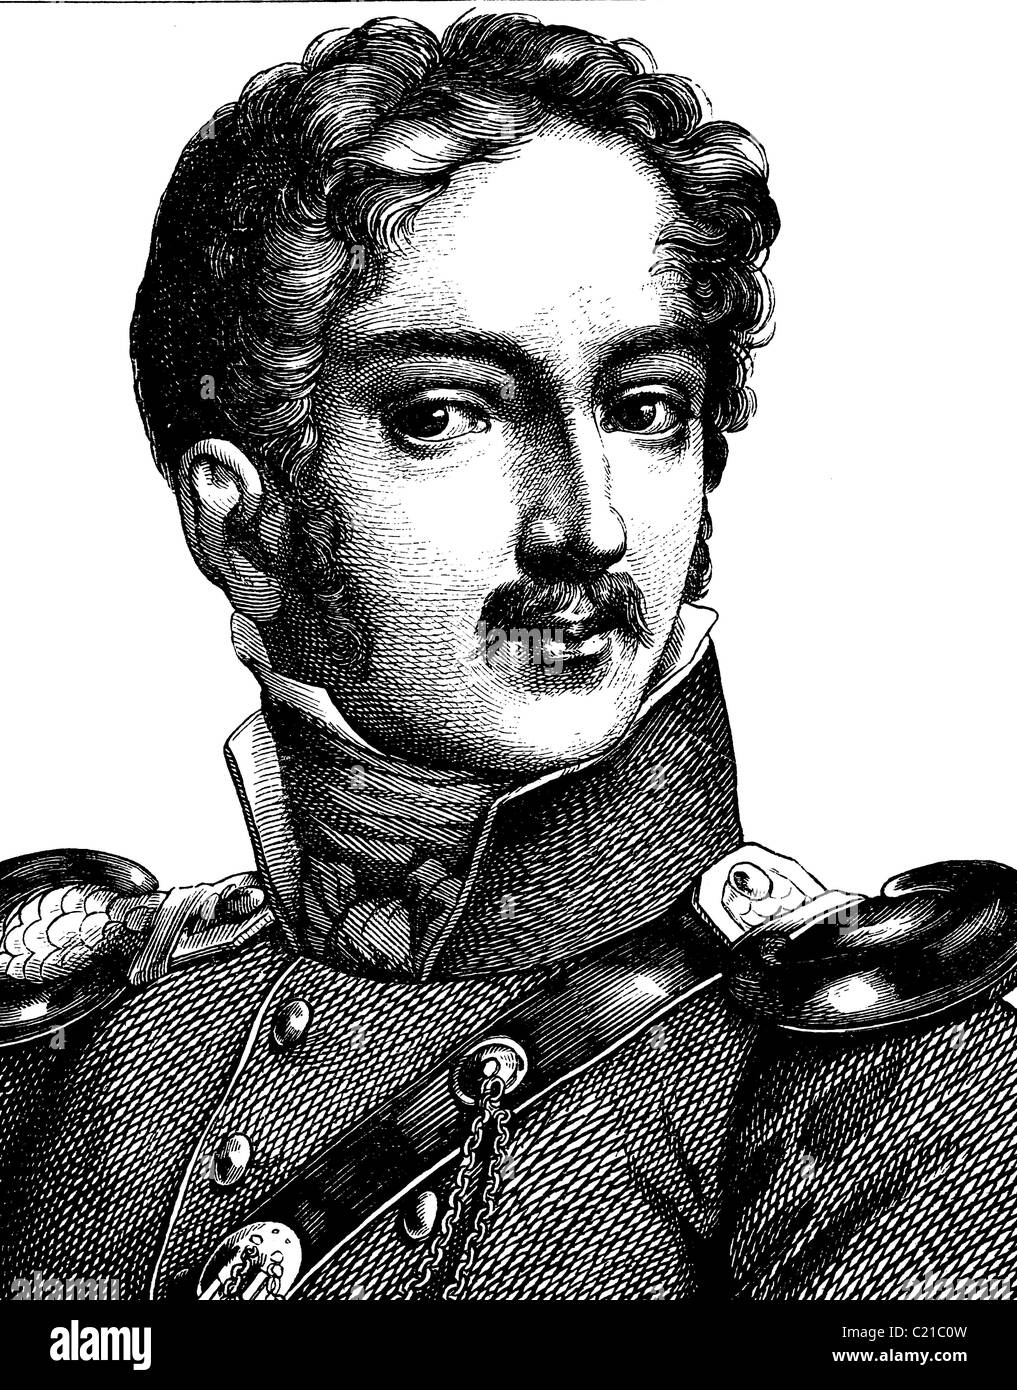 Digital improved image of Karl Theodor Koerner, 1791 - 1813, German poet and playwright, portrait, historical illustration, - Stock Image